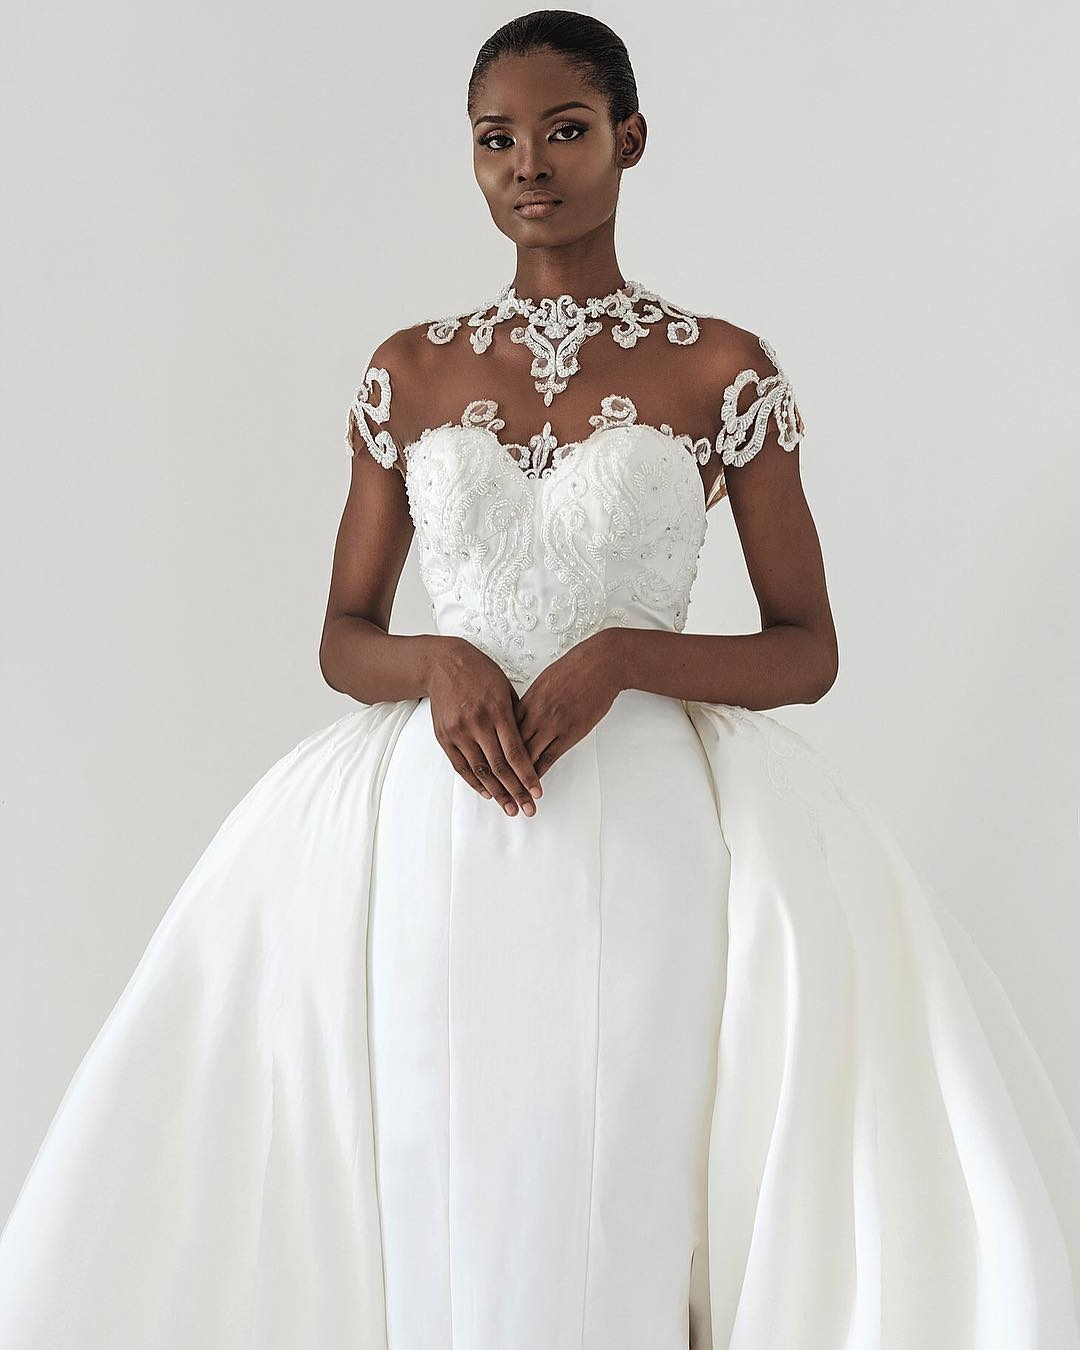 Andrea Iyamah Bridals Fashion and Wedding Dress Designer Toronto